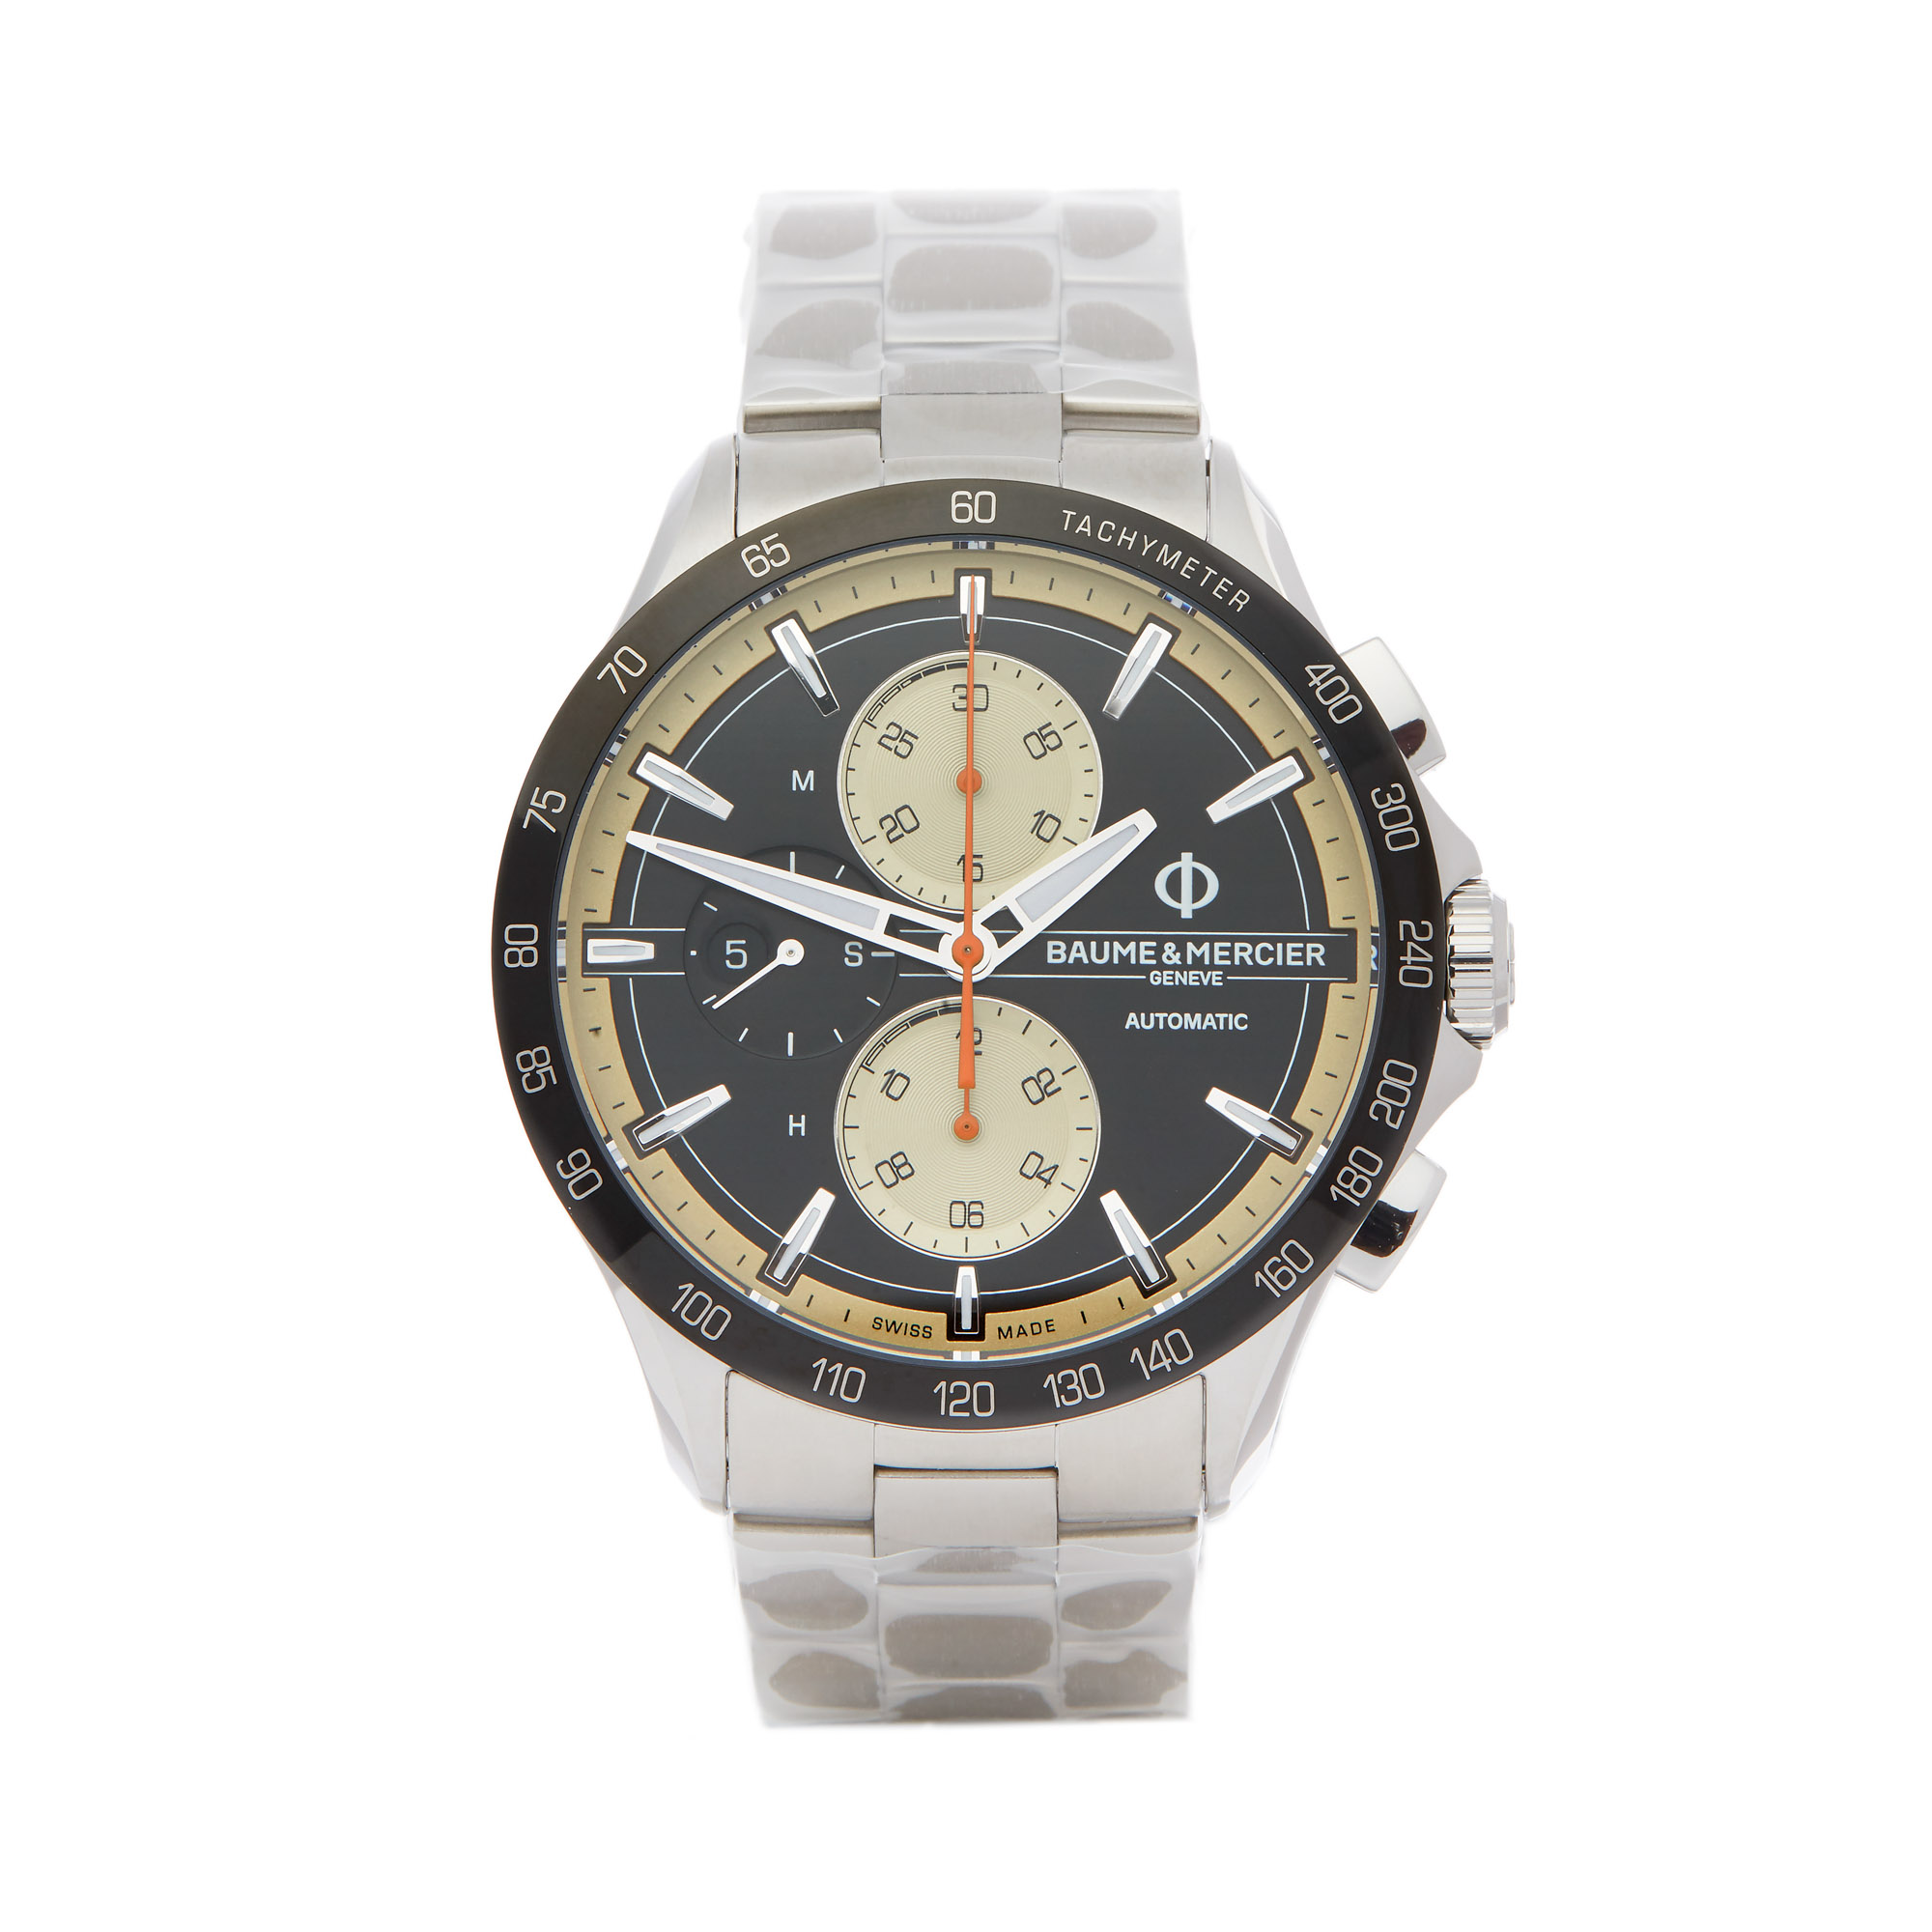 Baume & Mercier Clifton Club M0A10435 Men Stainless Steel Chronograph Watch - Image 9 of 9